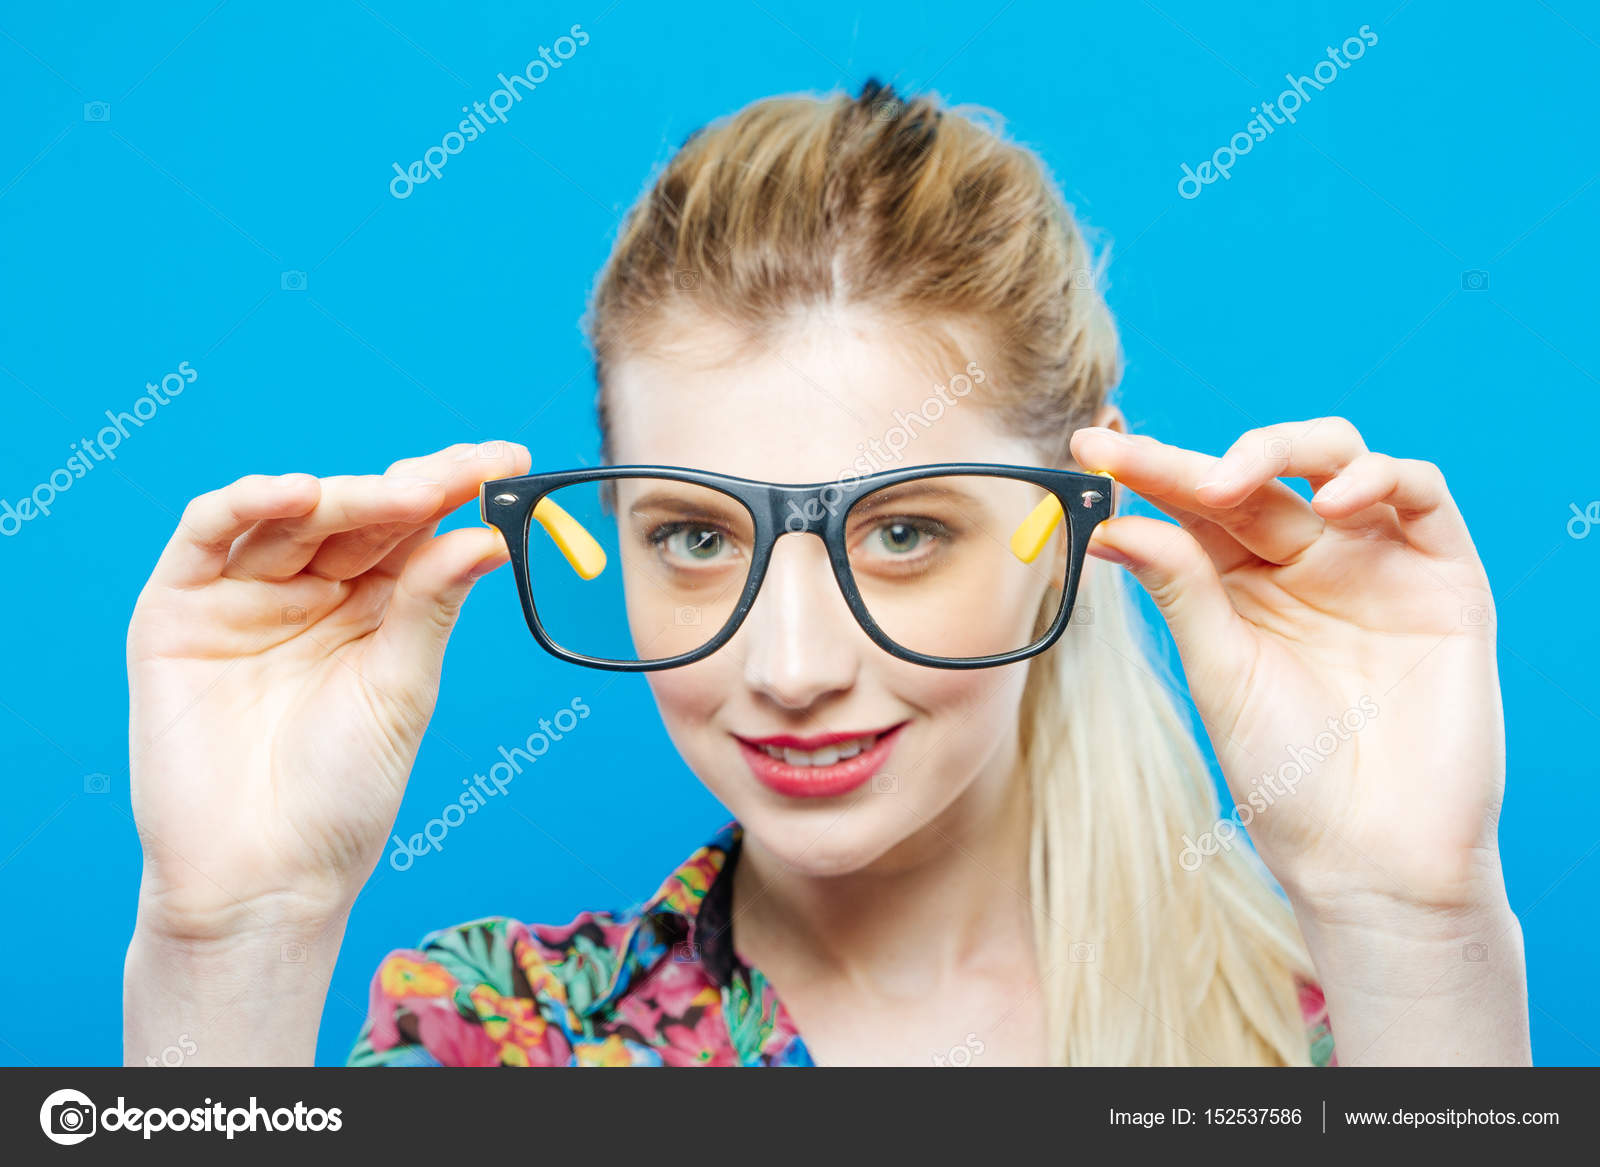 d5516c8dffa Closeup Portrait of Funny Smiling Blonde Woman with Ponytail Wearing  Colorful Shirt and Fashionable Eyeglasses on Blue Background. Sensual Cute  Girl is ...